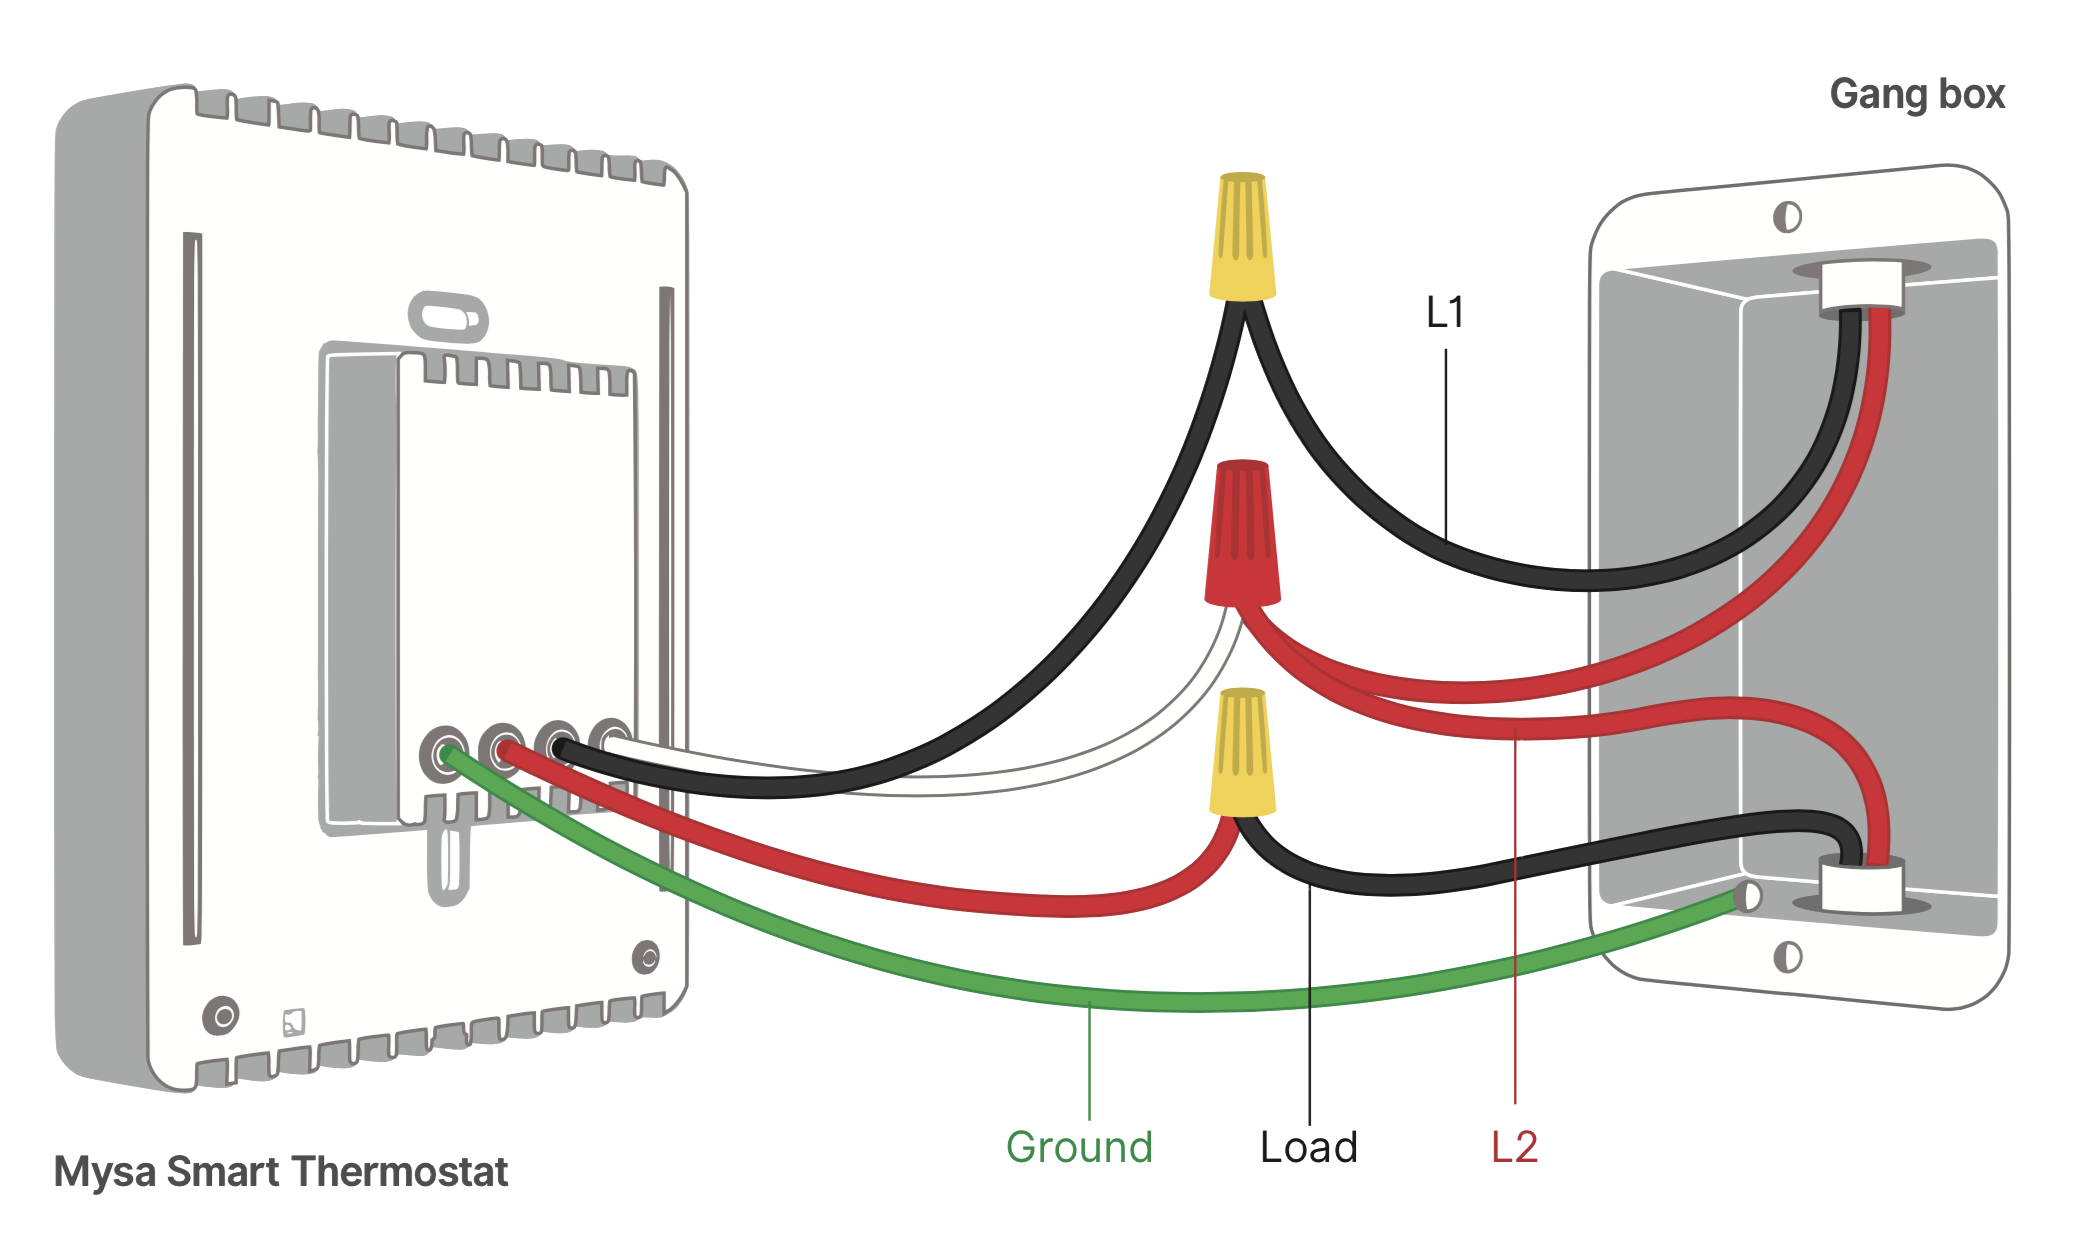 The Colours Of The Wires In The Gang Box Are Different From Your Wiring Diagrams  What Do I Do